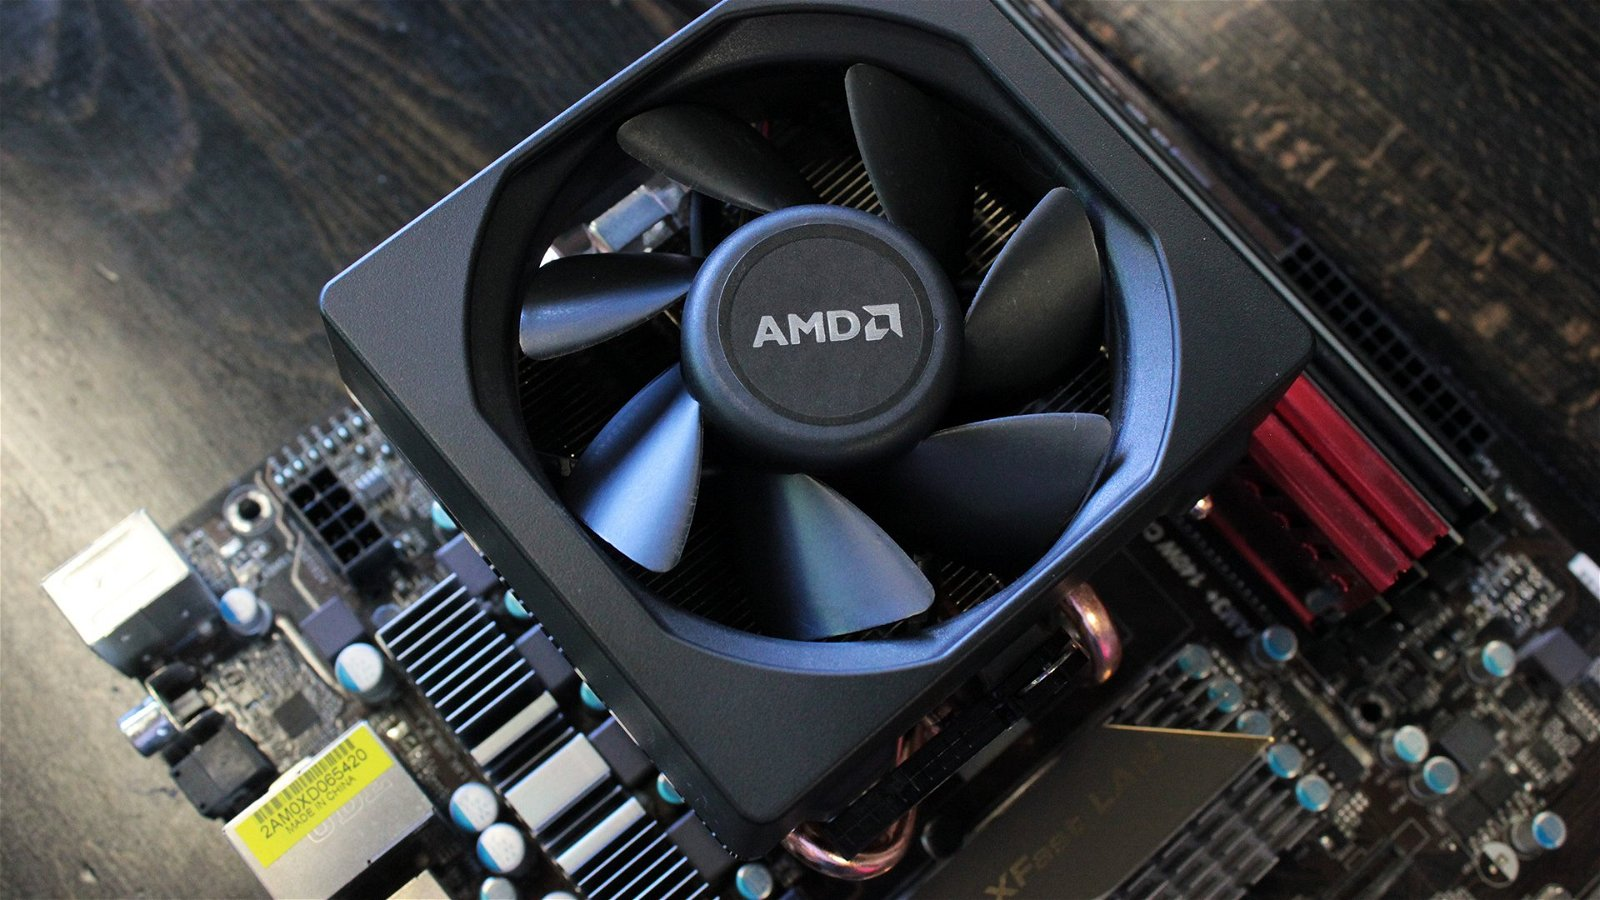 AMD's Wraith CPU cooler reviewed - The Tech Report - Page 1